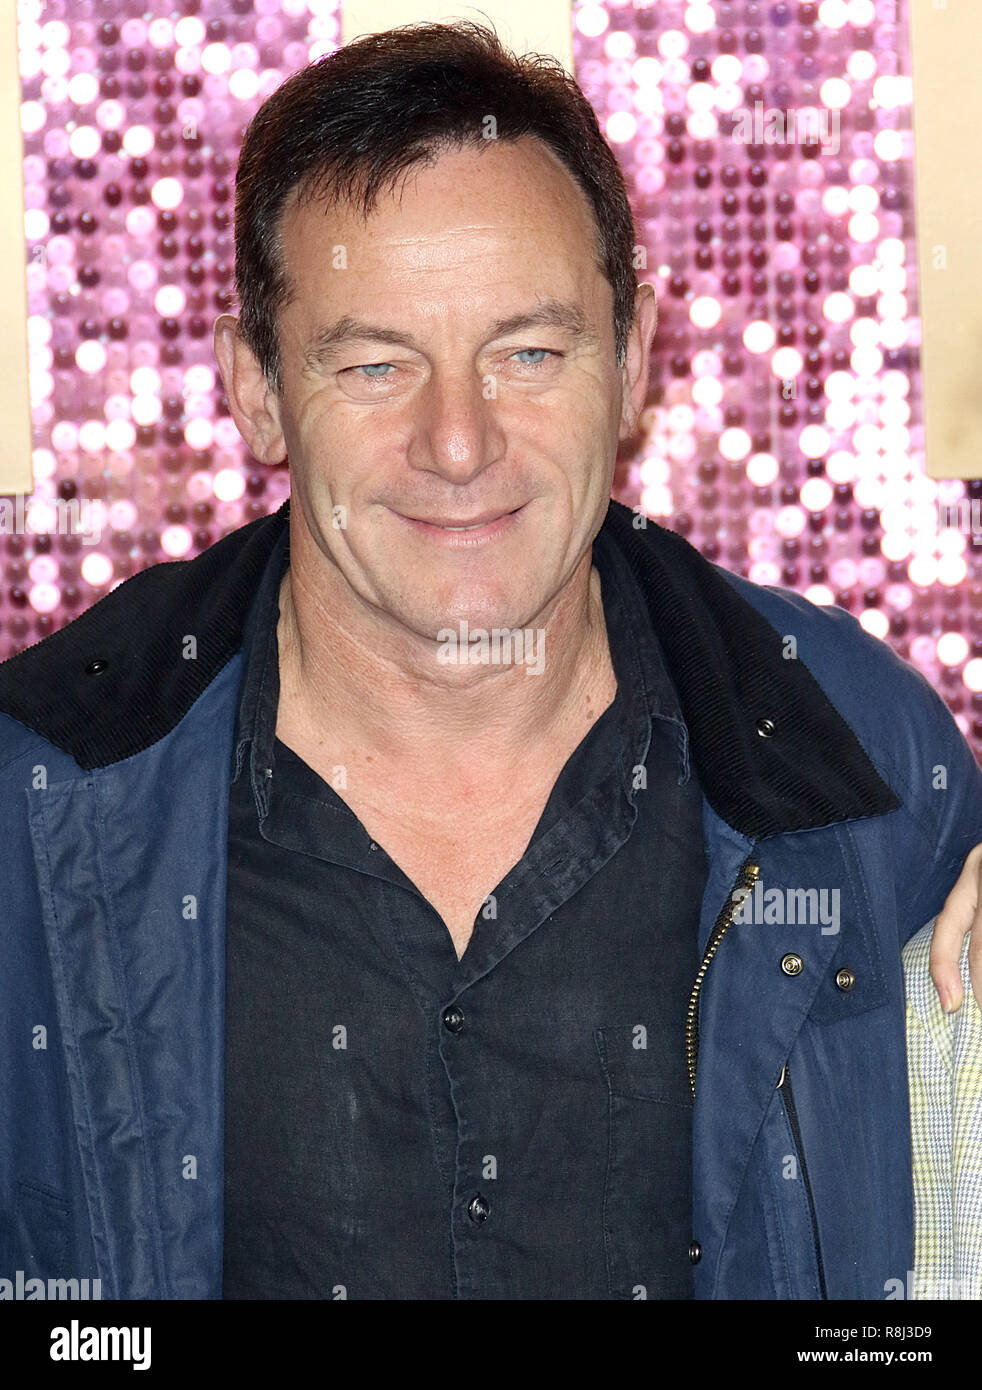 Oct 23, 2018  - Jason Isaacs attending Bohemian Rhapsody World Premiere, SSE Arena, Wembley in London, UK Stock Photo